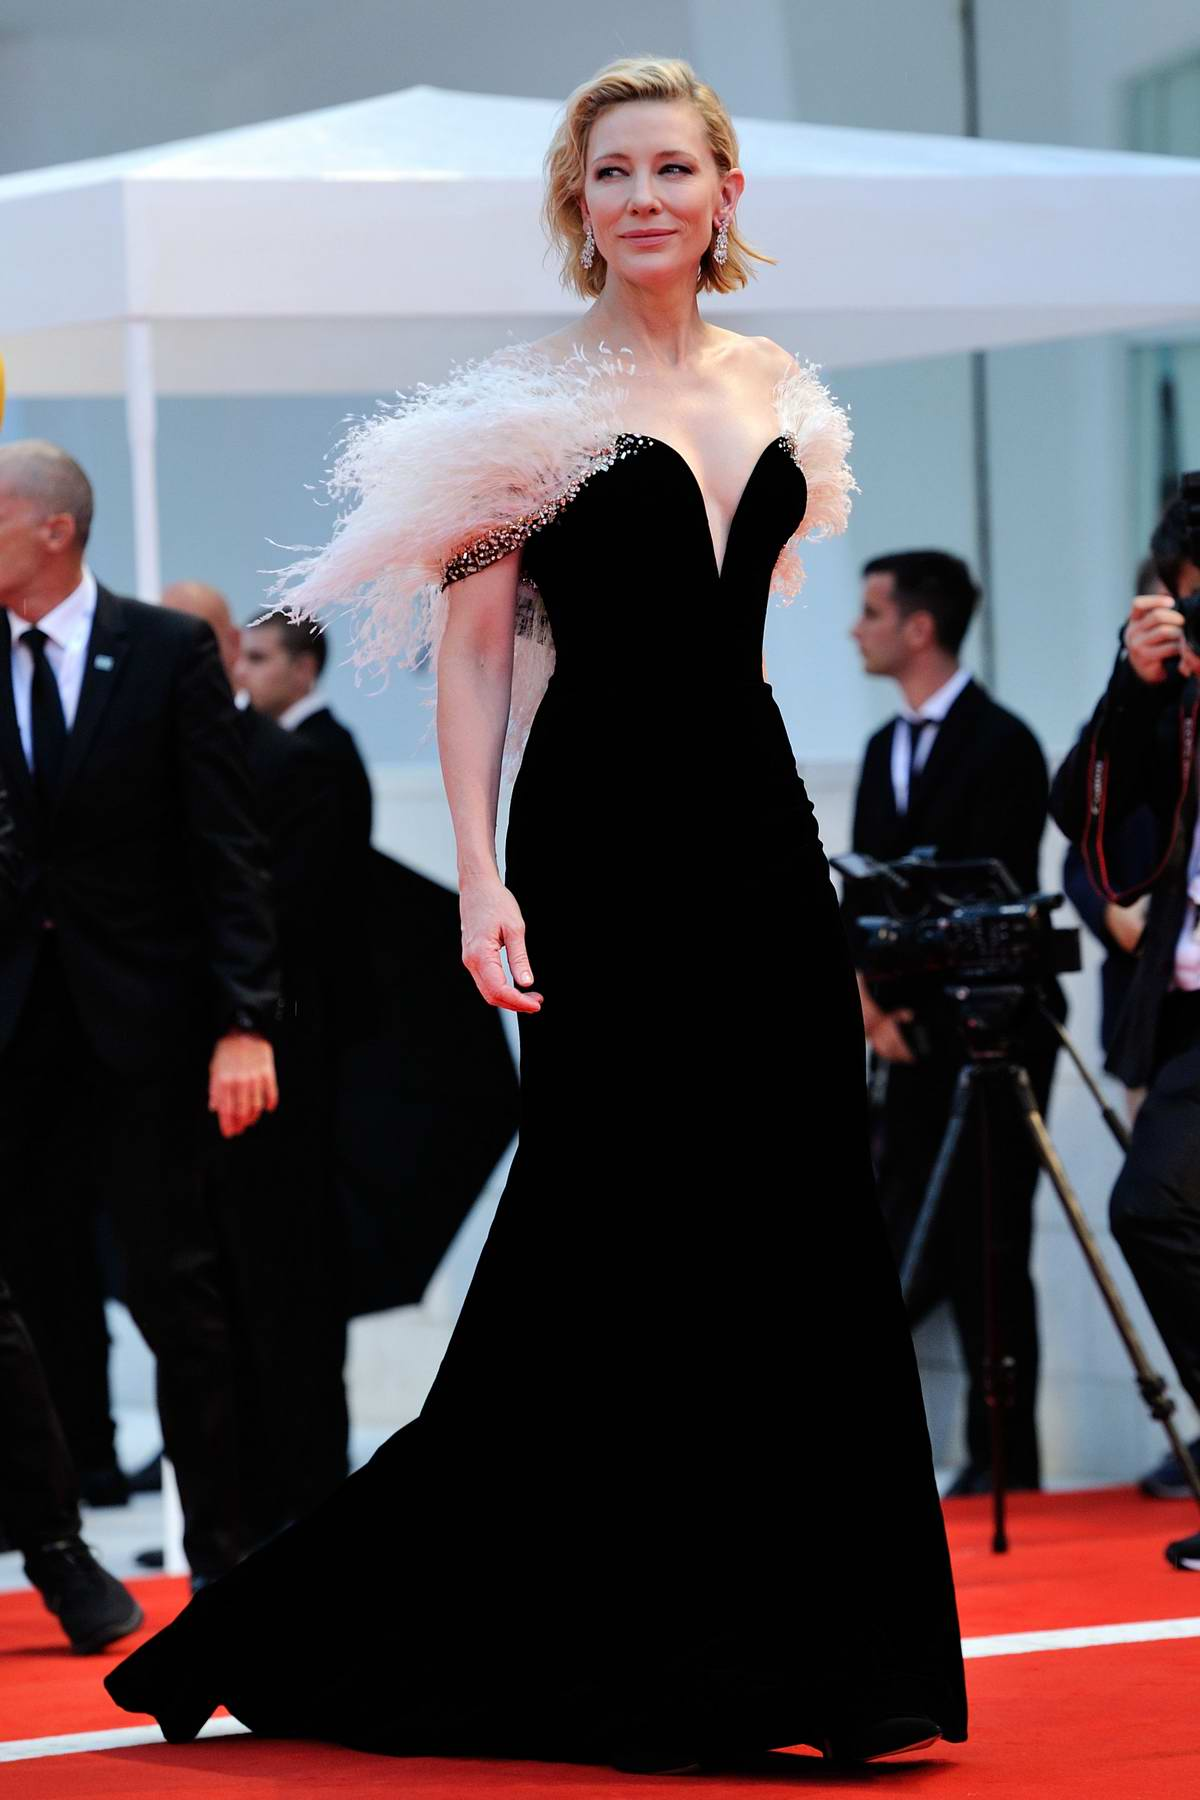 Cate Blanchett attends 'A Star Is Born' premiere during the 75th Venice Film Festival in Venice, Italy